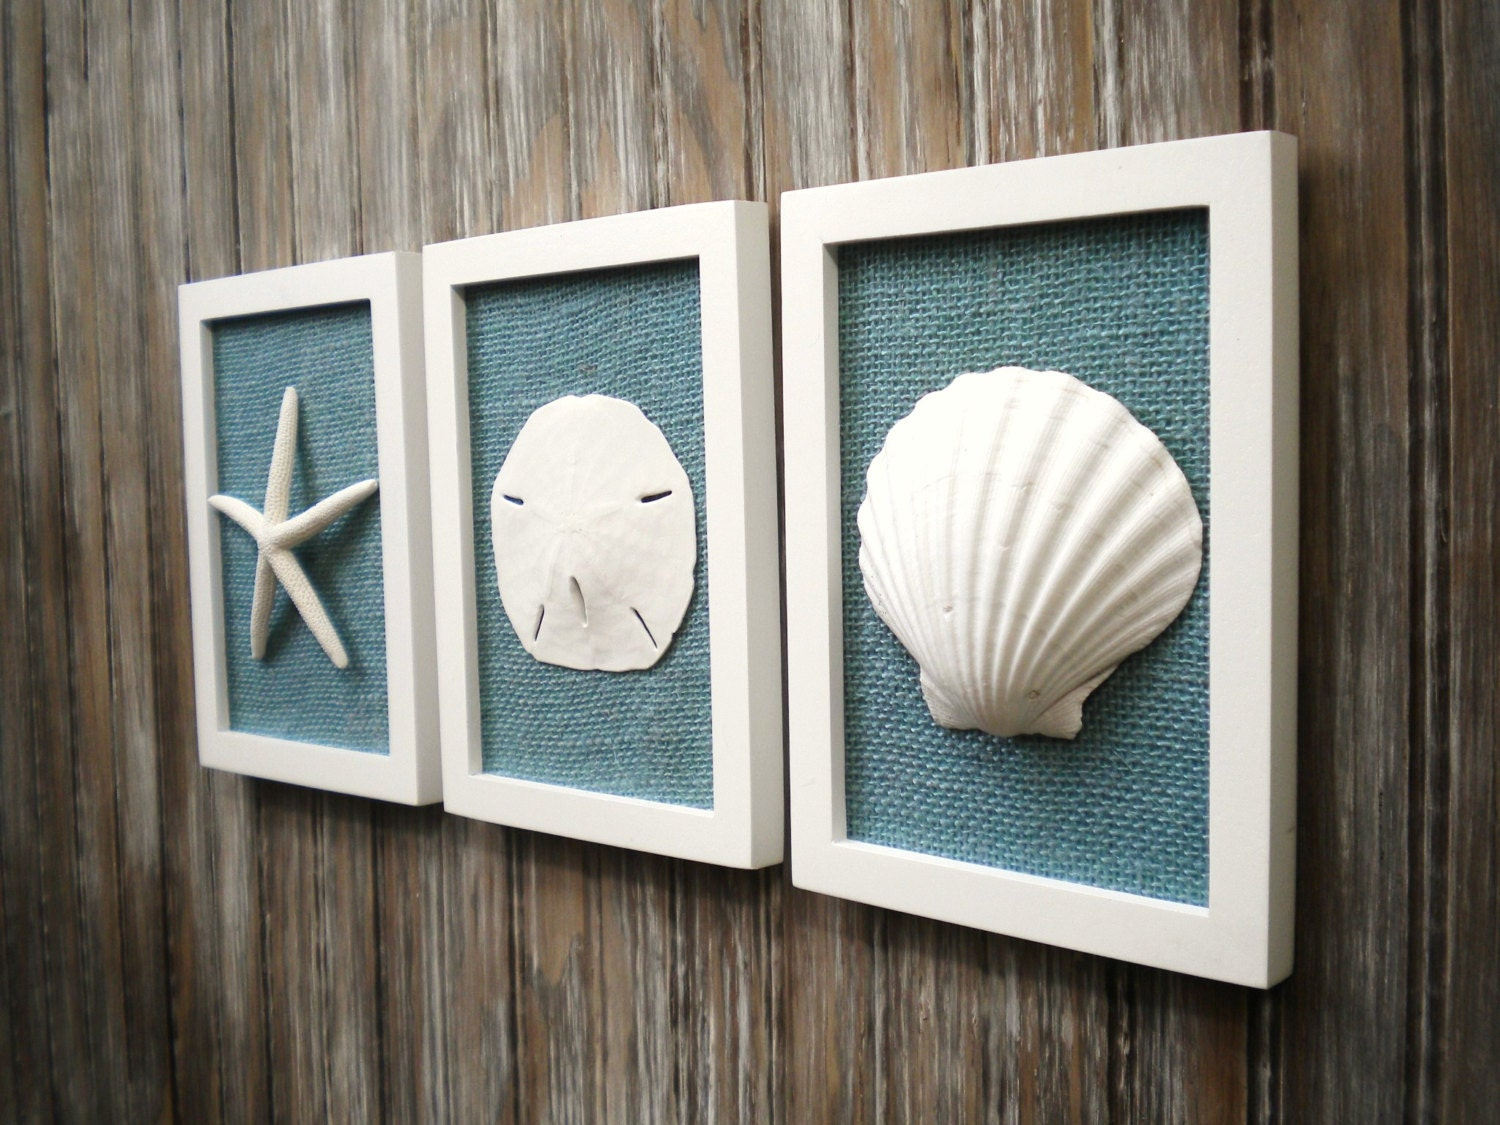 cottage chic set of beach decor wall art nautical decor coastal decor - Ocean Decor